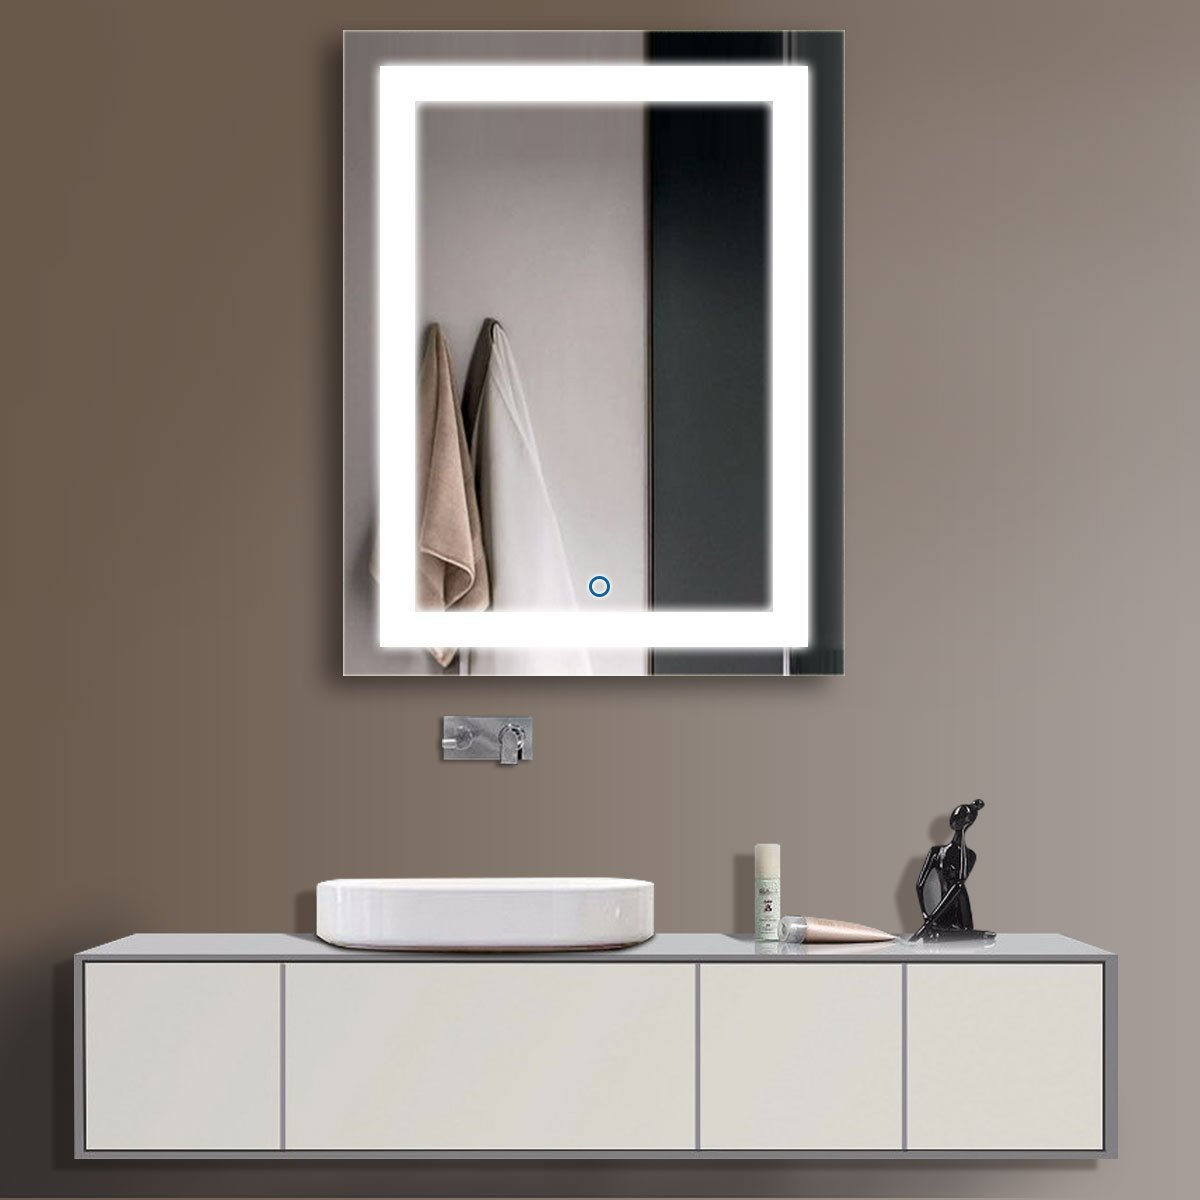 HYH Vertical LED Bathroom Silvered Mirror with Touch Button,3628 in.(DK-OD-CK168-I)